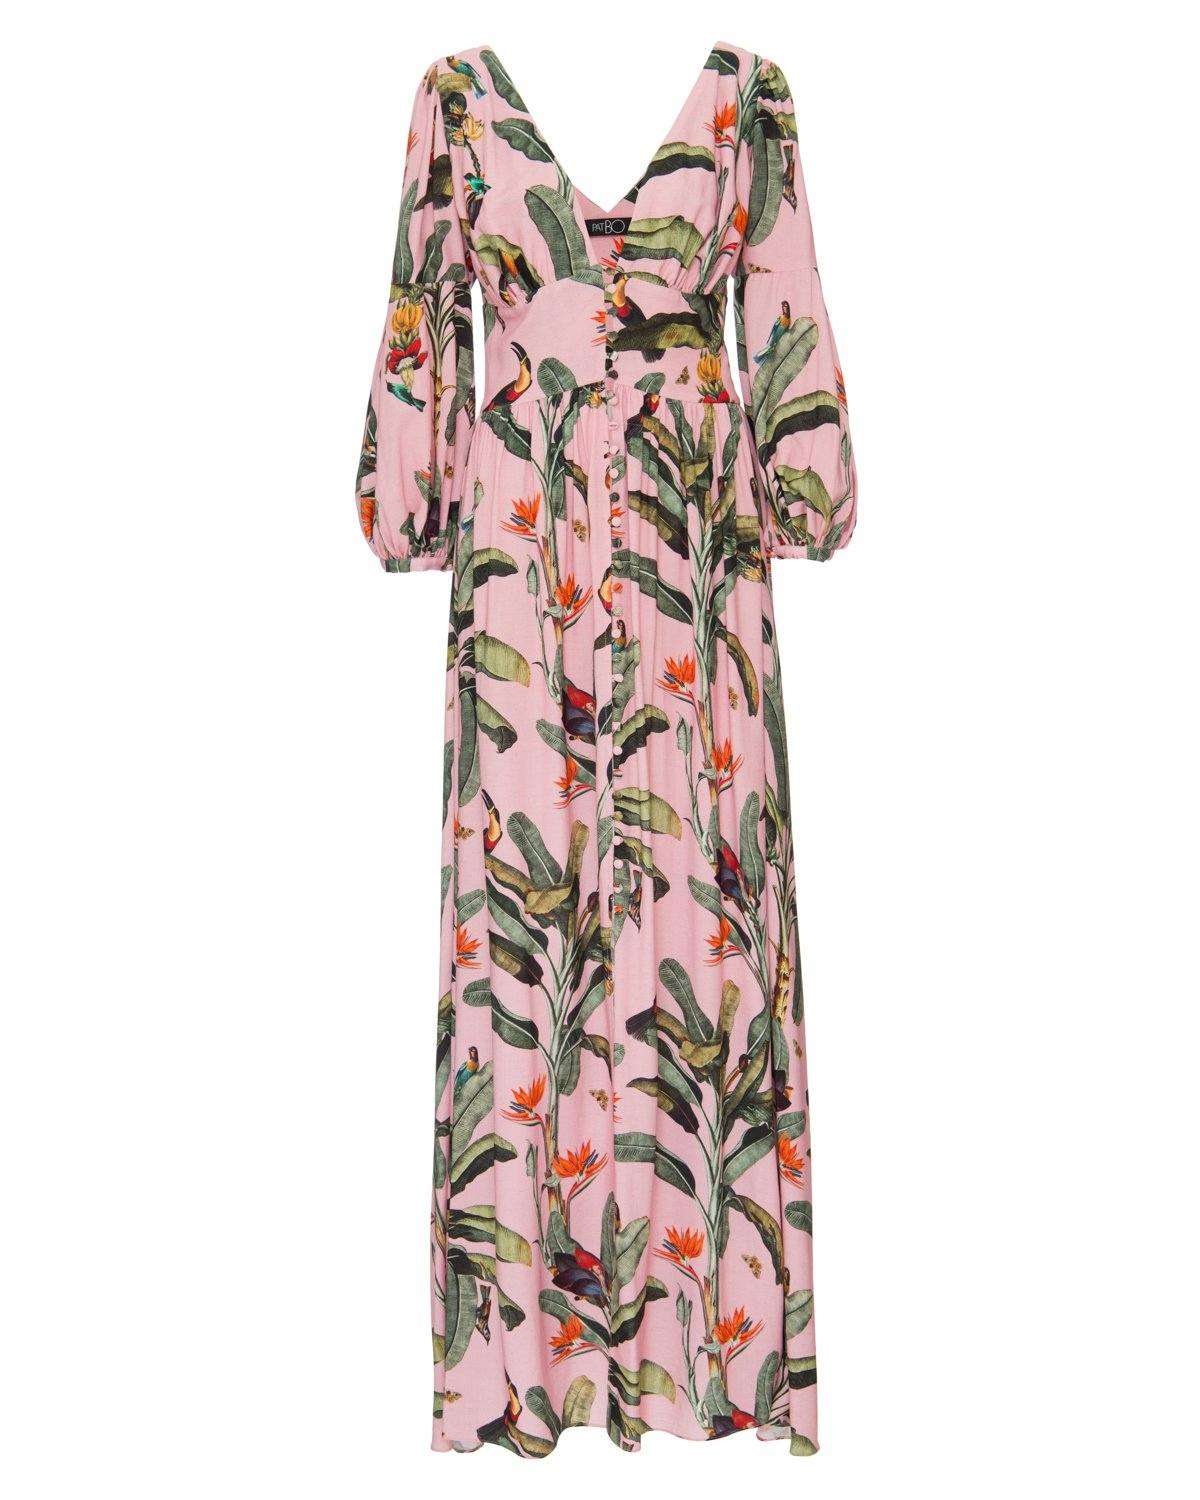 TROPICAL PRINT BUTTON FRONT MAXI DRESS